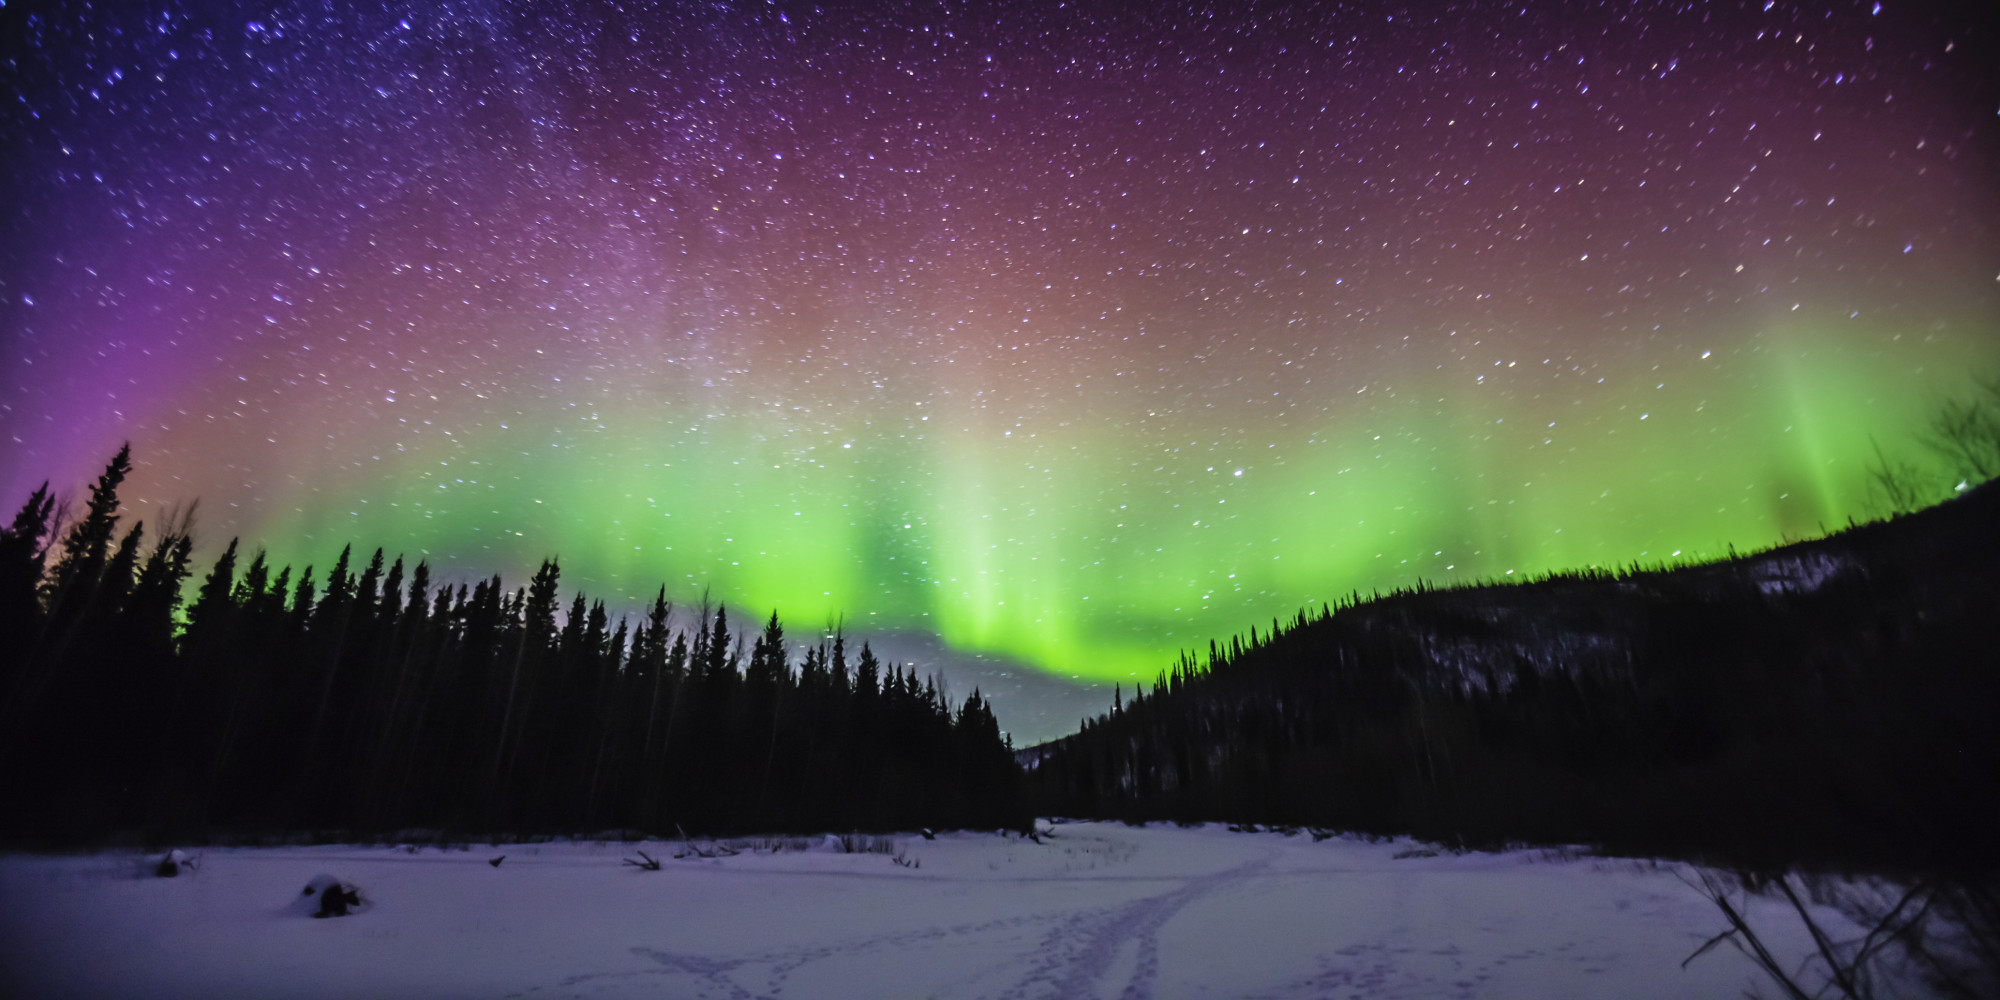 ... Telescope Finds Universe Is Missing 80% Of Its Light  HuffPost UK